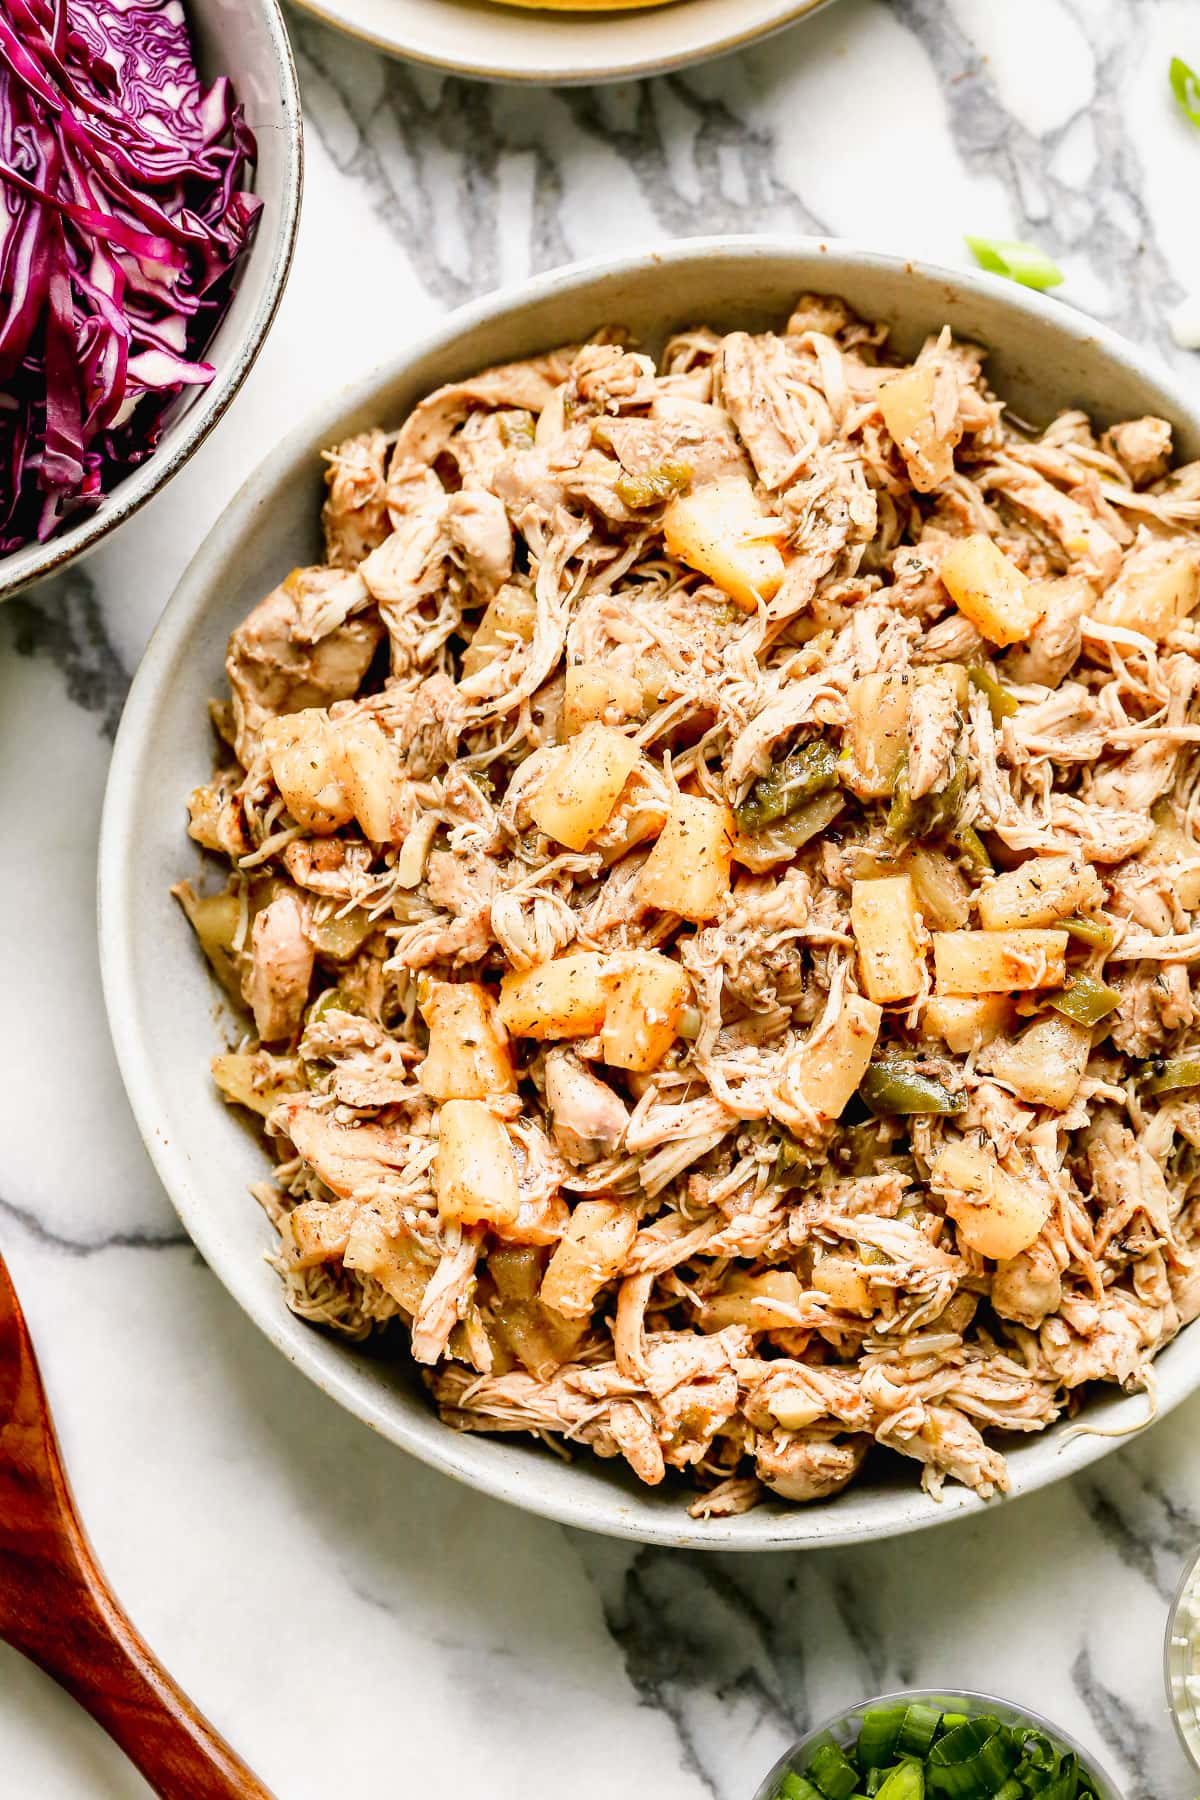 Shredded chicken and pineapple in a bowl